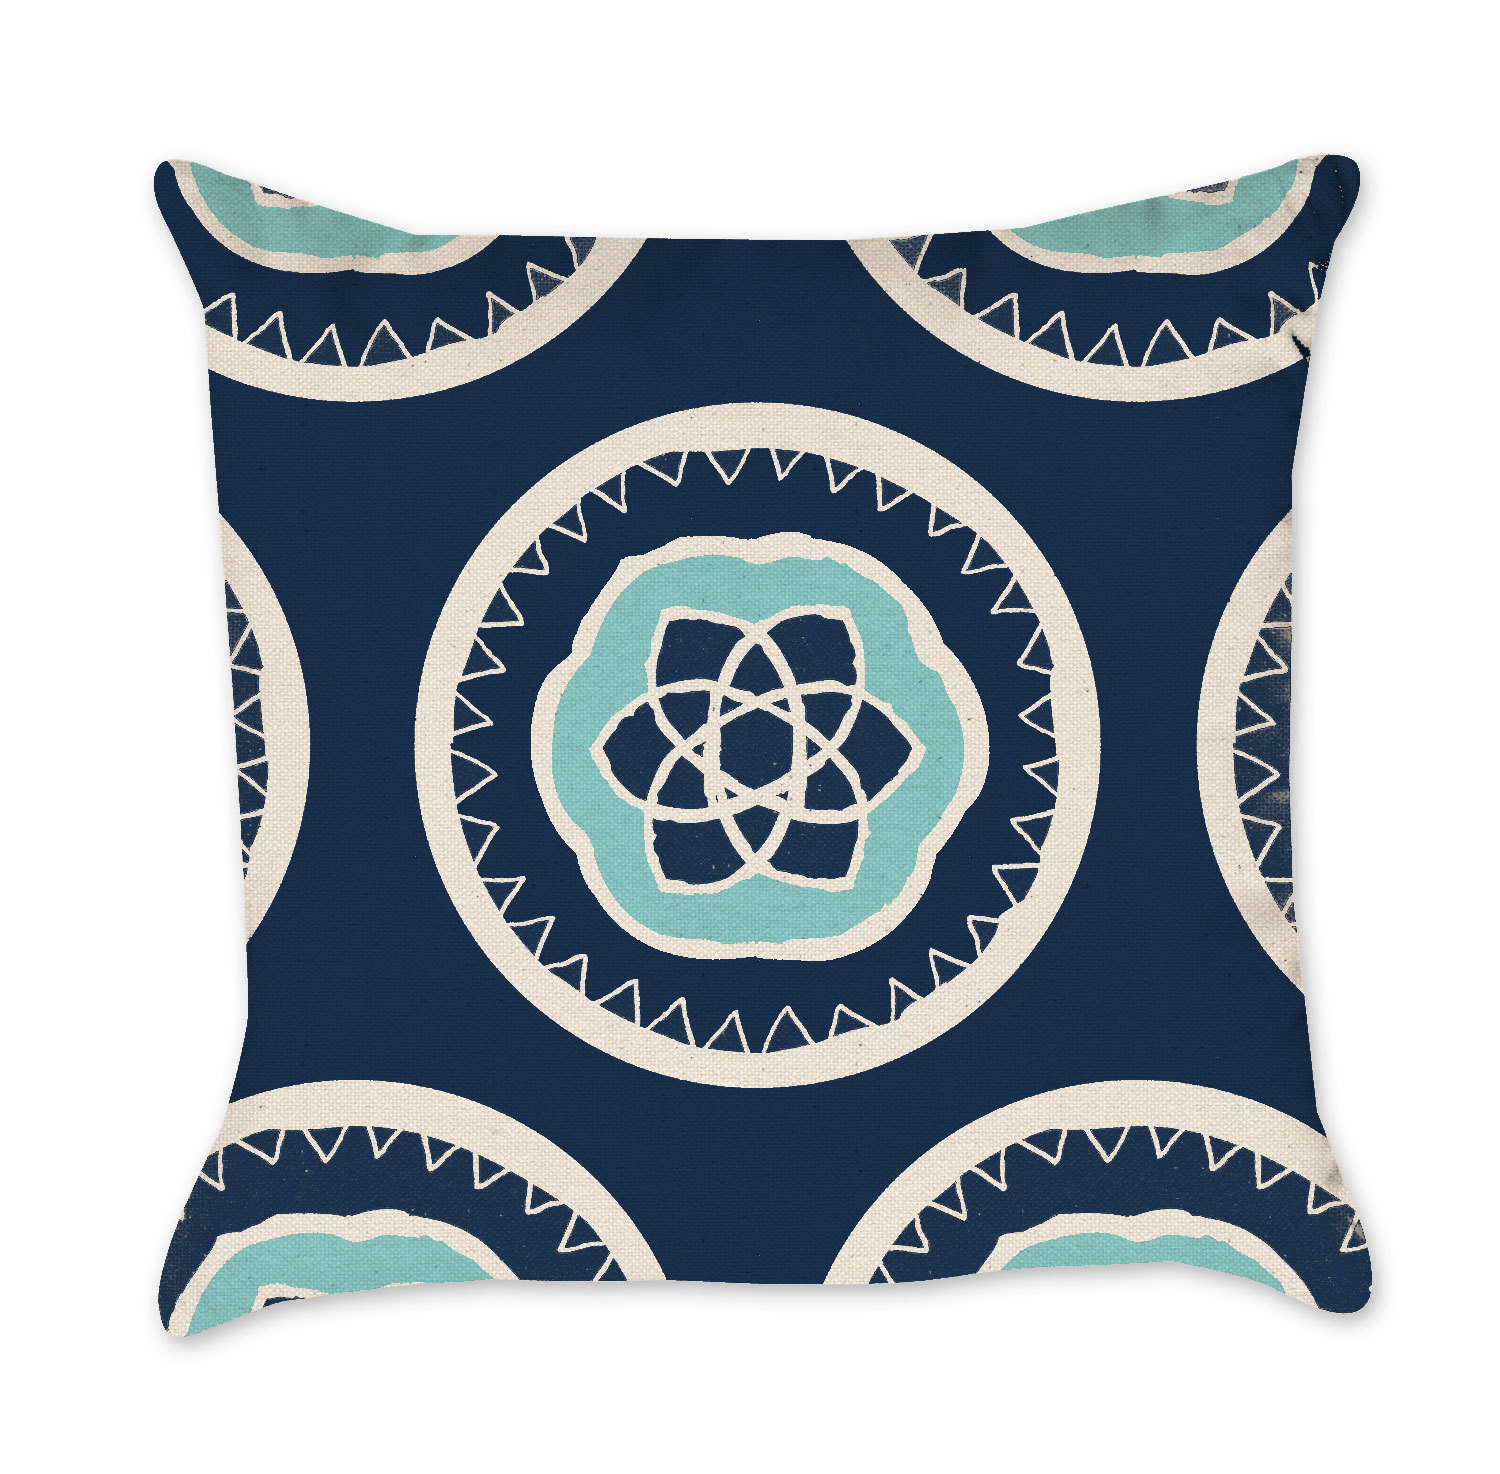 pillow coral pillows covers living jgreg throw room best for decorative navy by pink sofa and